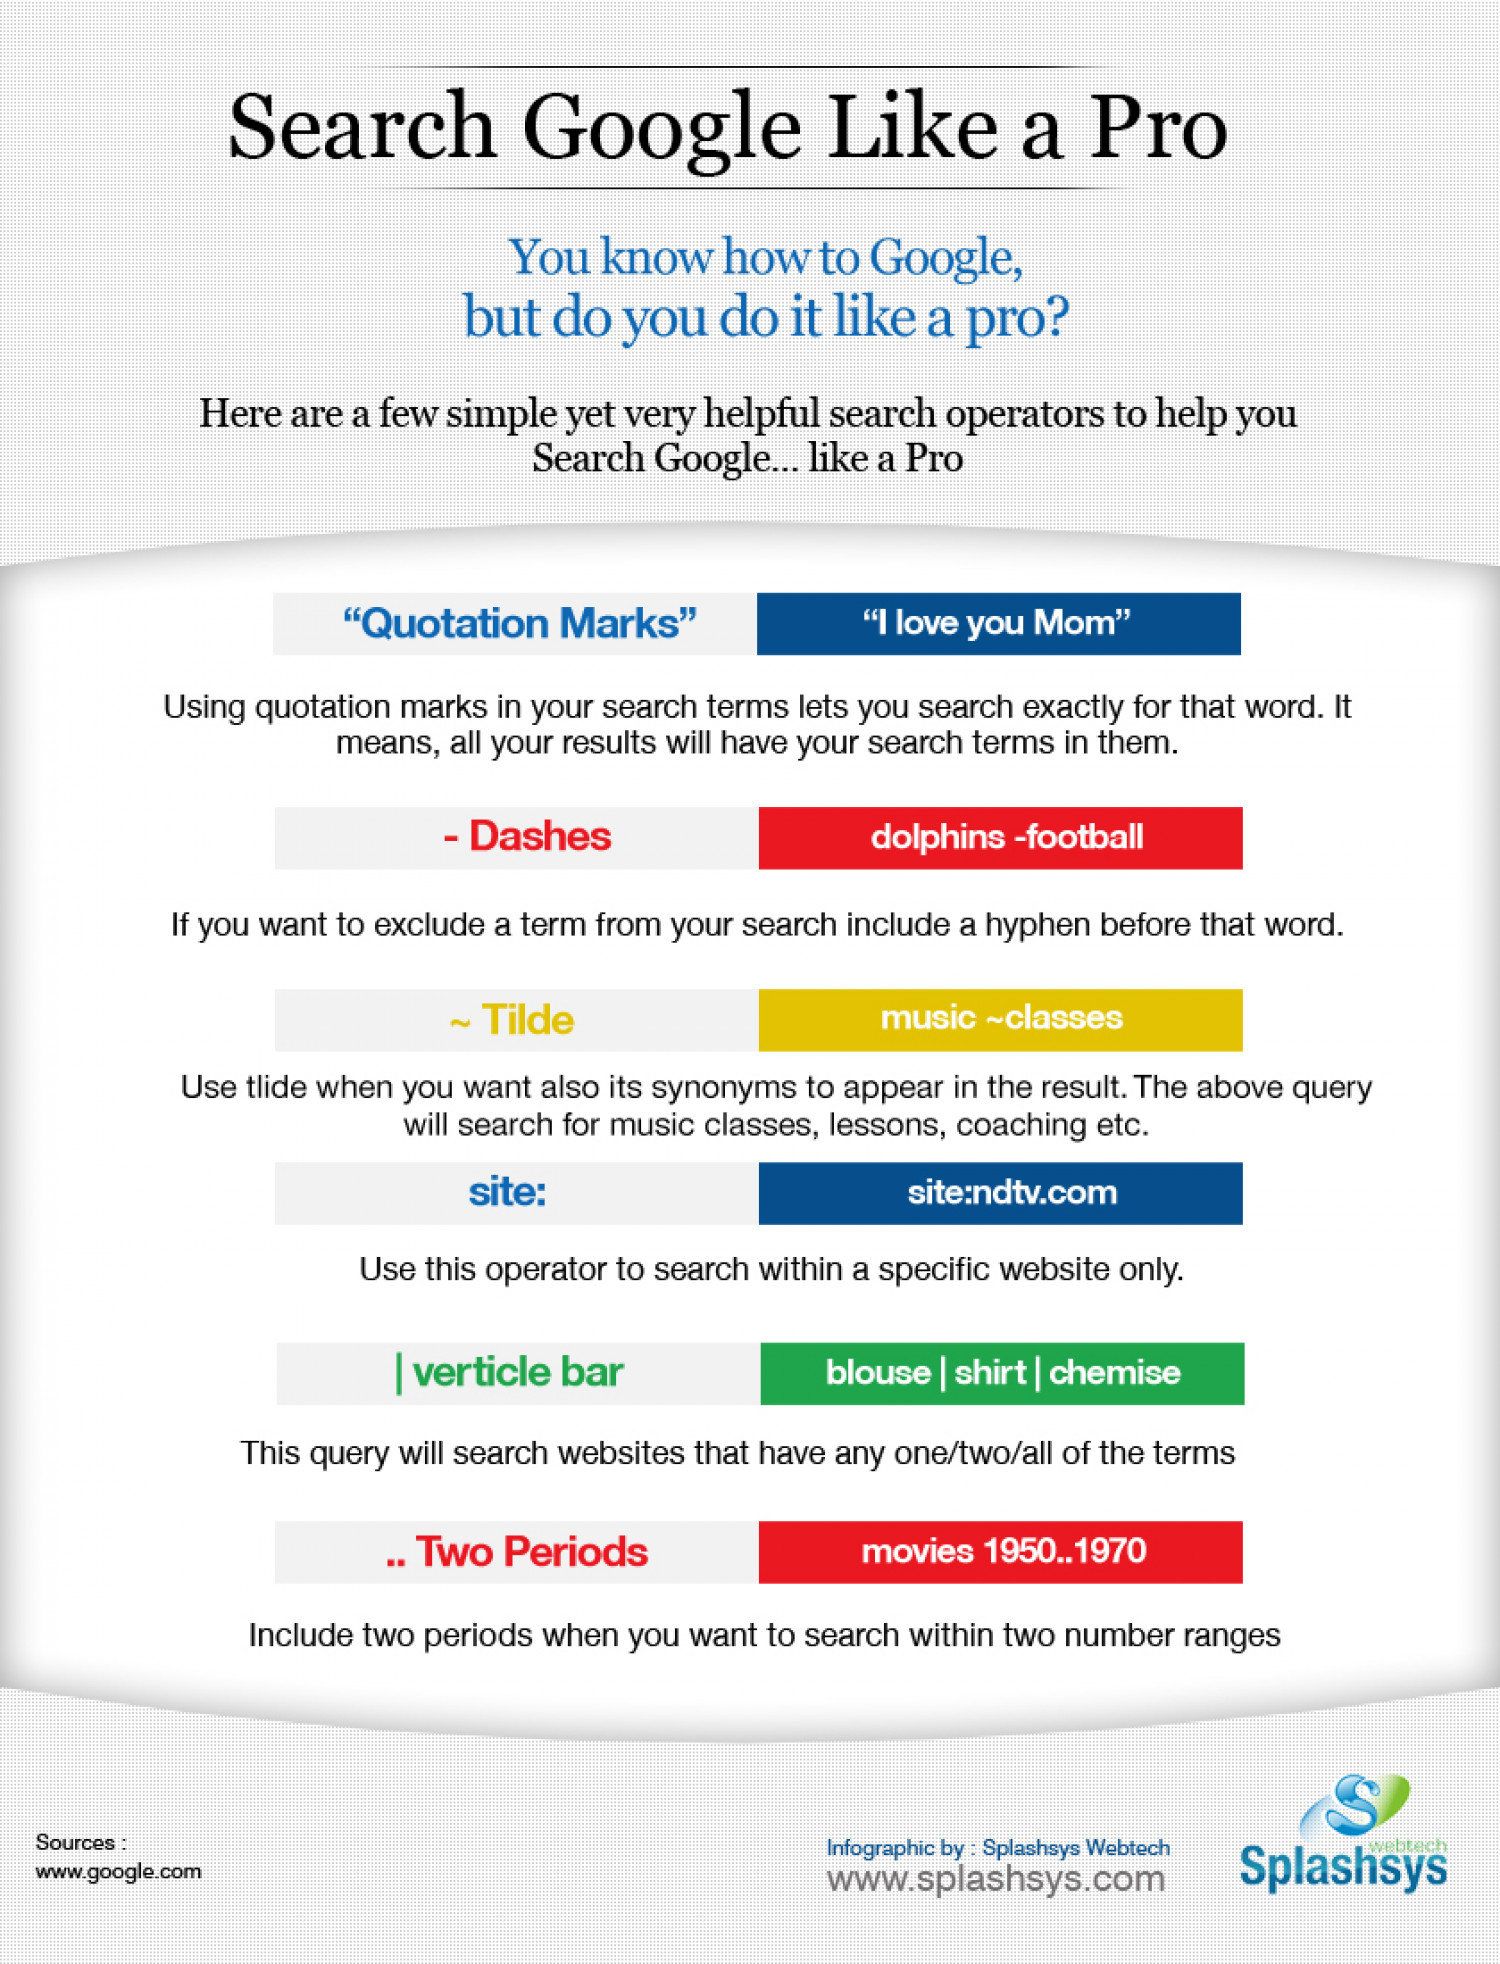 Search Google Like a Pro Infographic